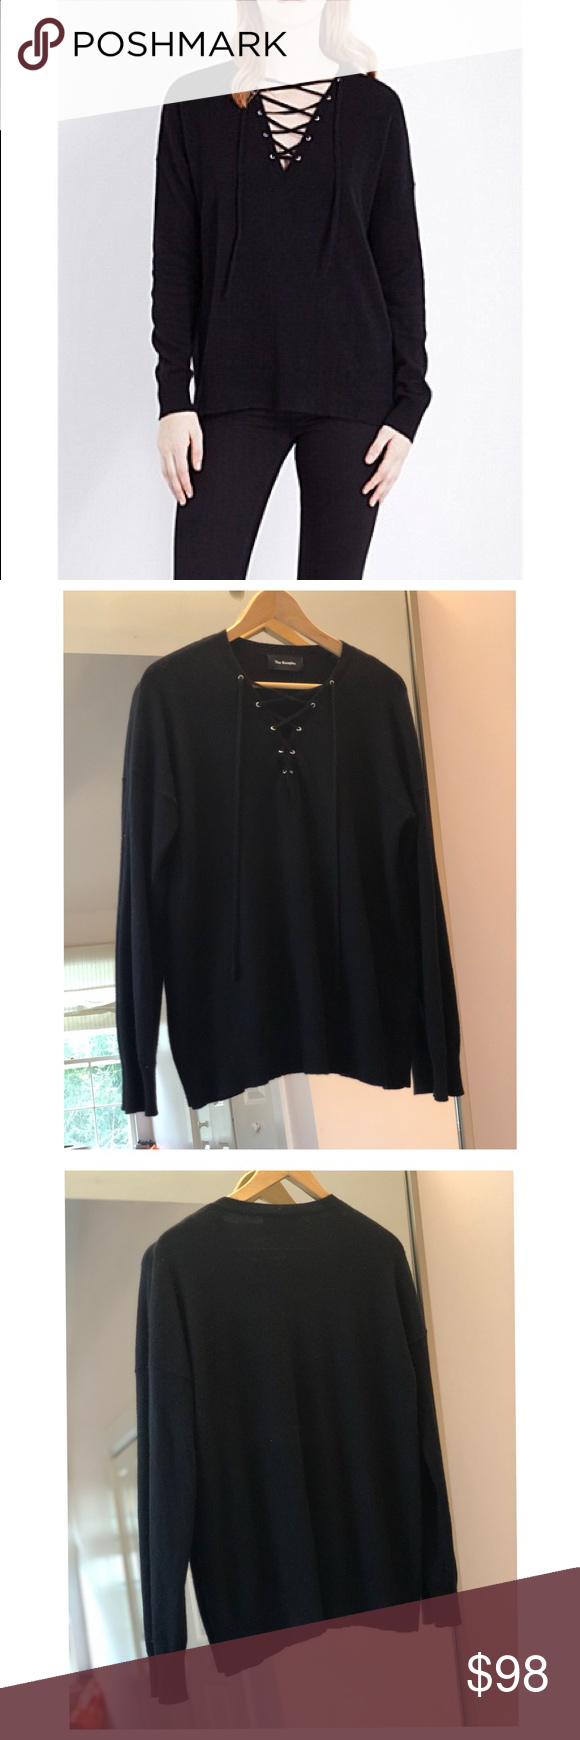 e860490824 THE KOOPLES Lace Up Wool Cashmere Sweater S Gently worn super essential  basic in black soft